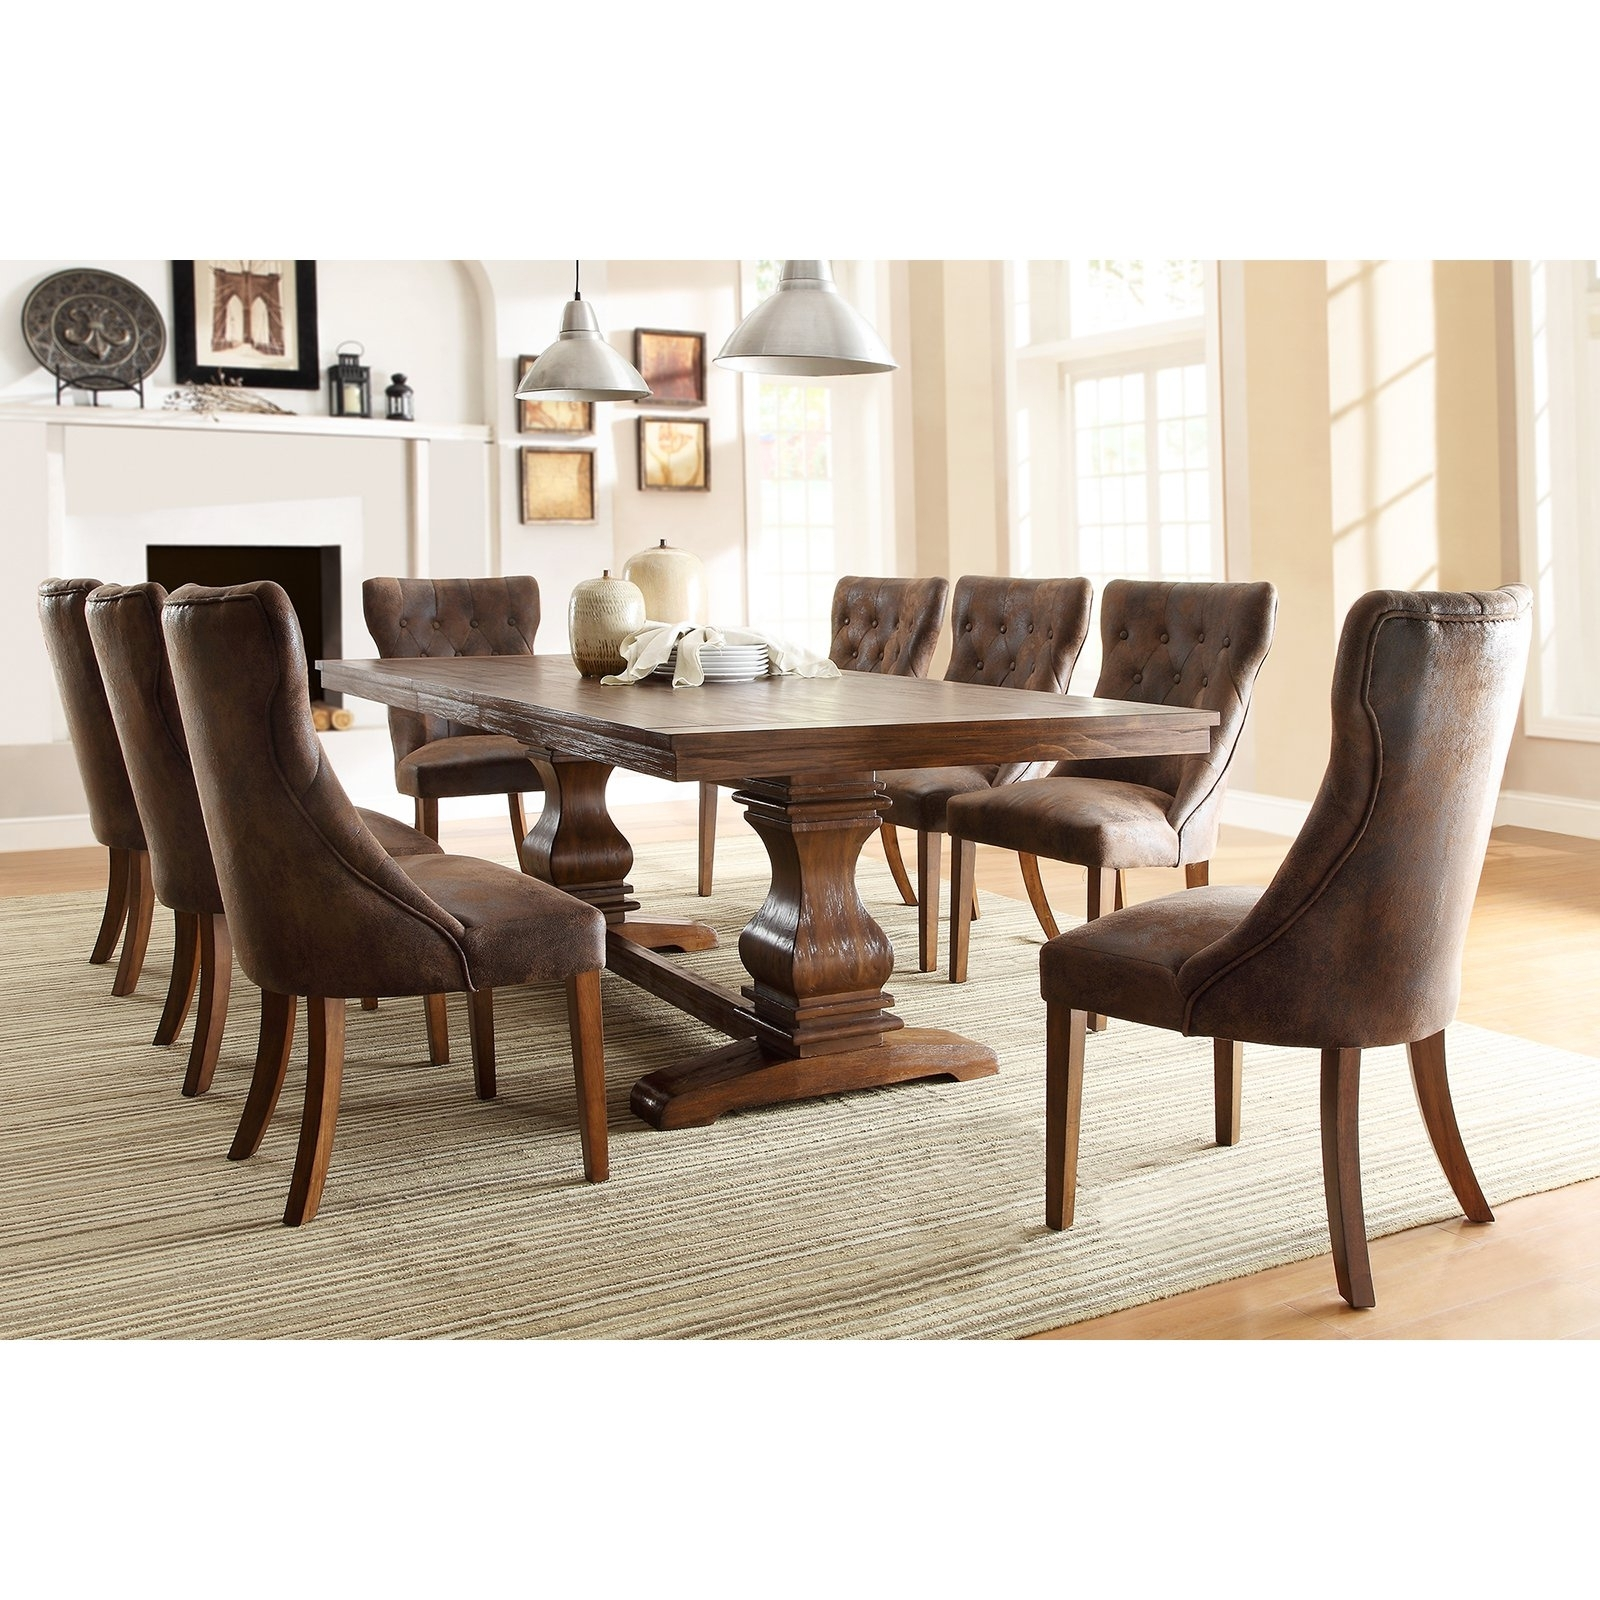 Cheap Oak Dining Sets Within Recent Weston Home Marie Louise 9 Piece Expandable Trestle Dining Table Set (Gallery 14 of 25)